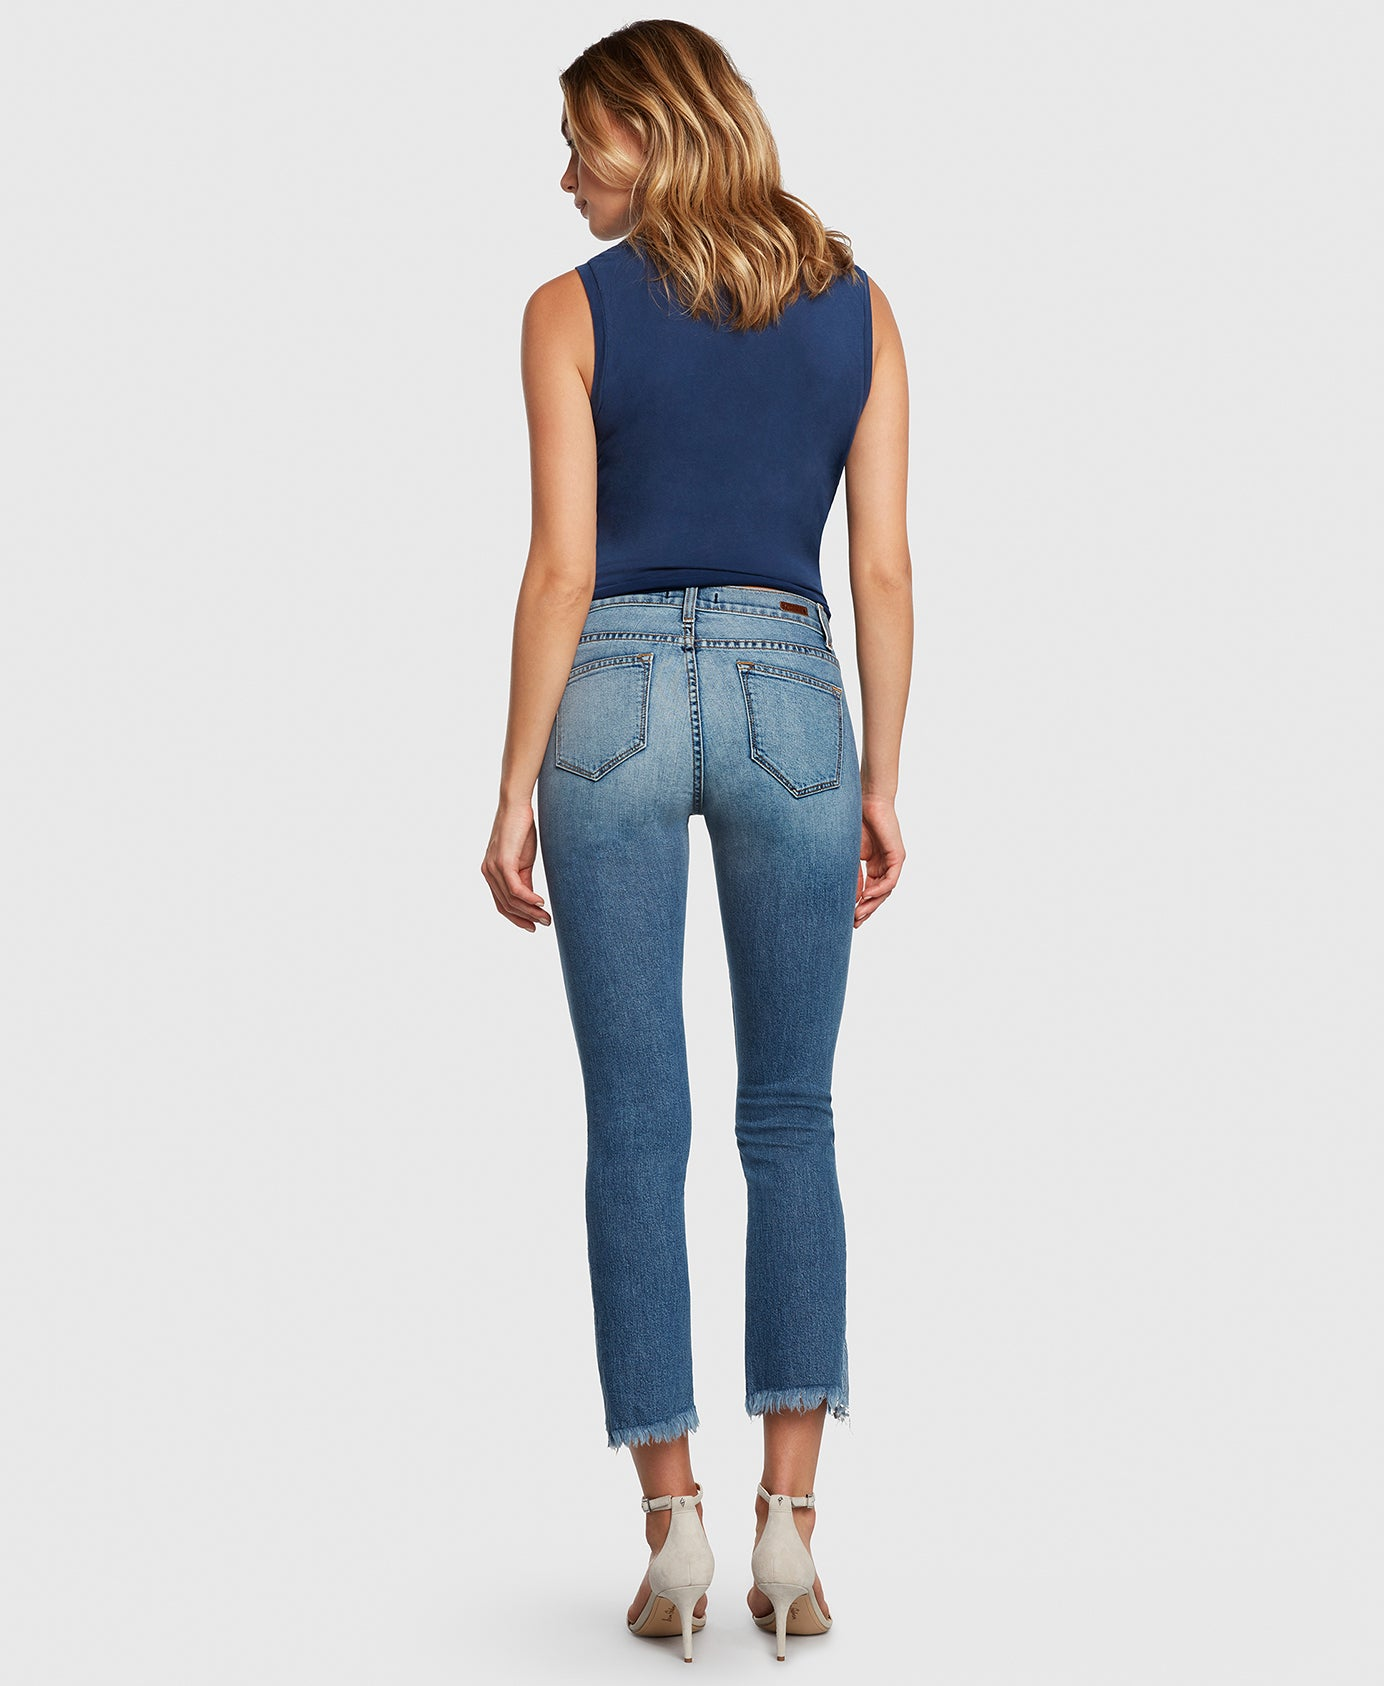 Principle Jeans DARE in Holiday cropped flare back